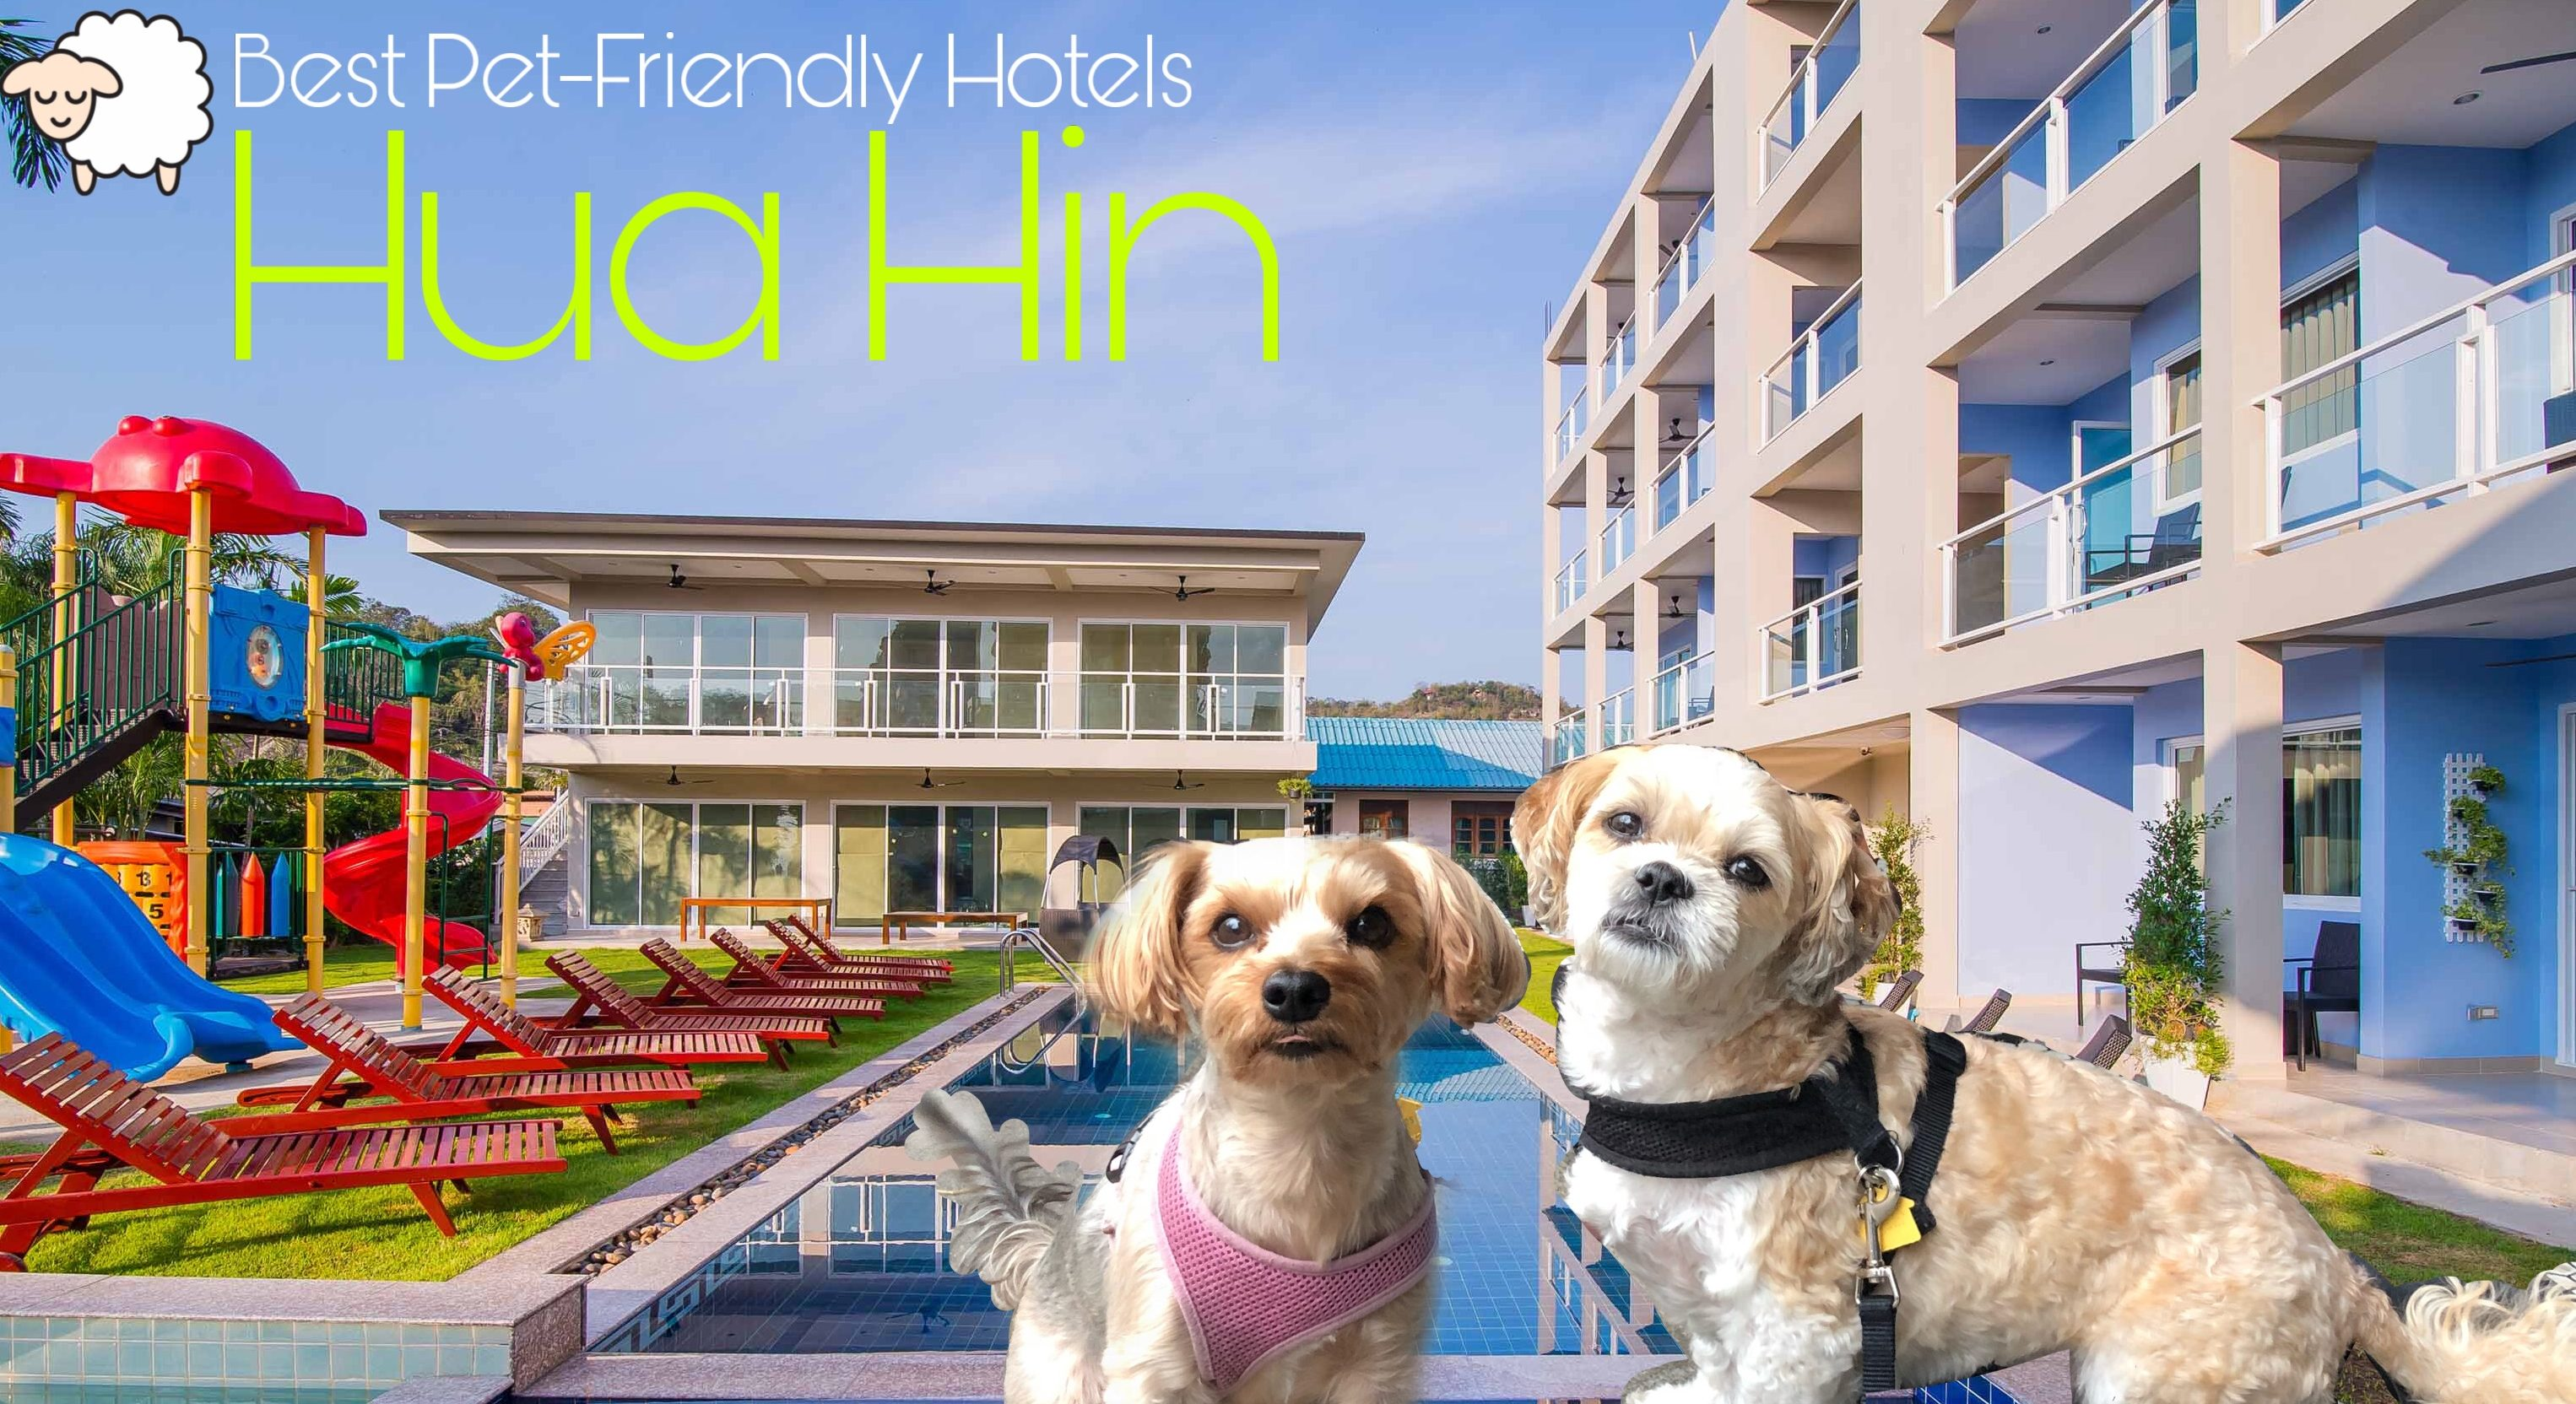 Pet-Friendly Hotels In Thailand (Hua Hin)